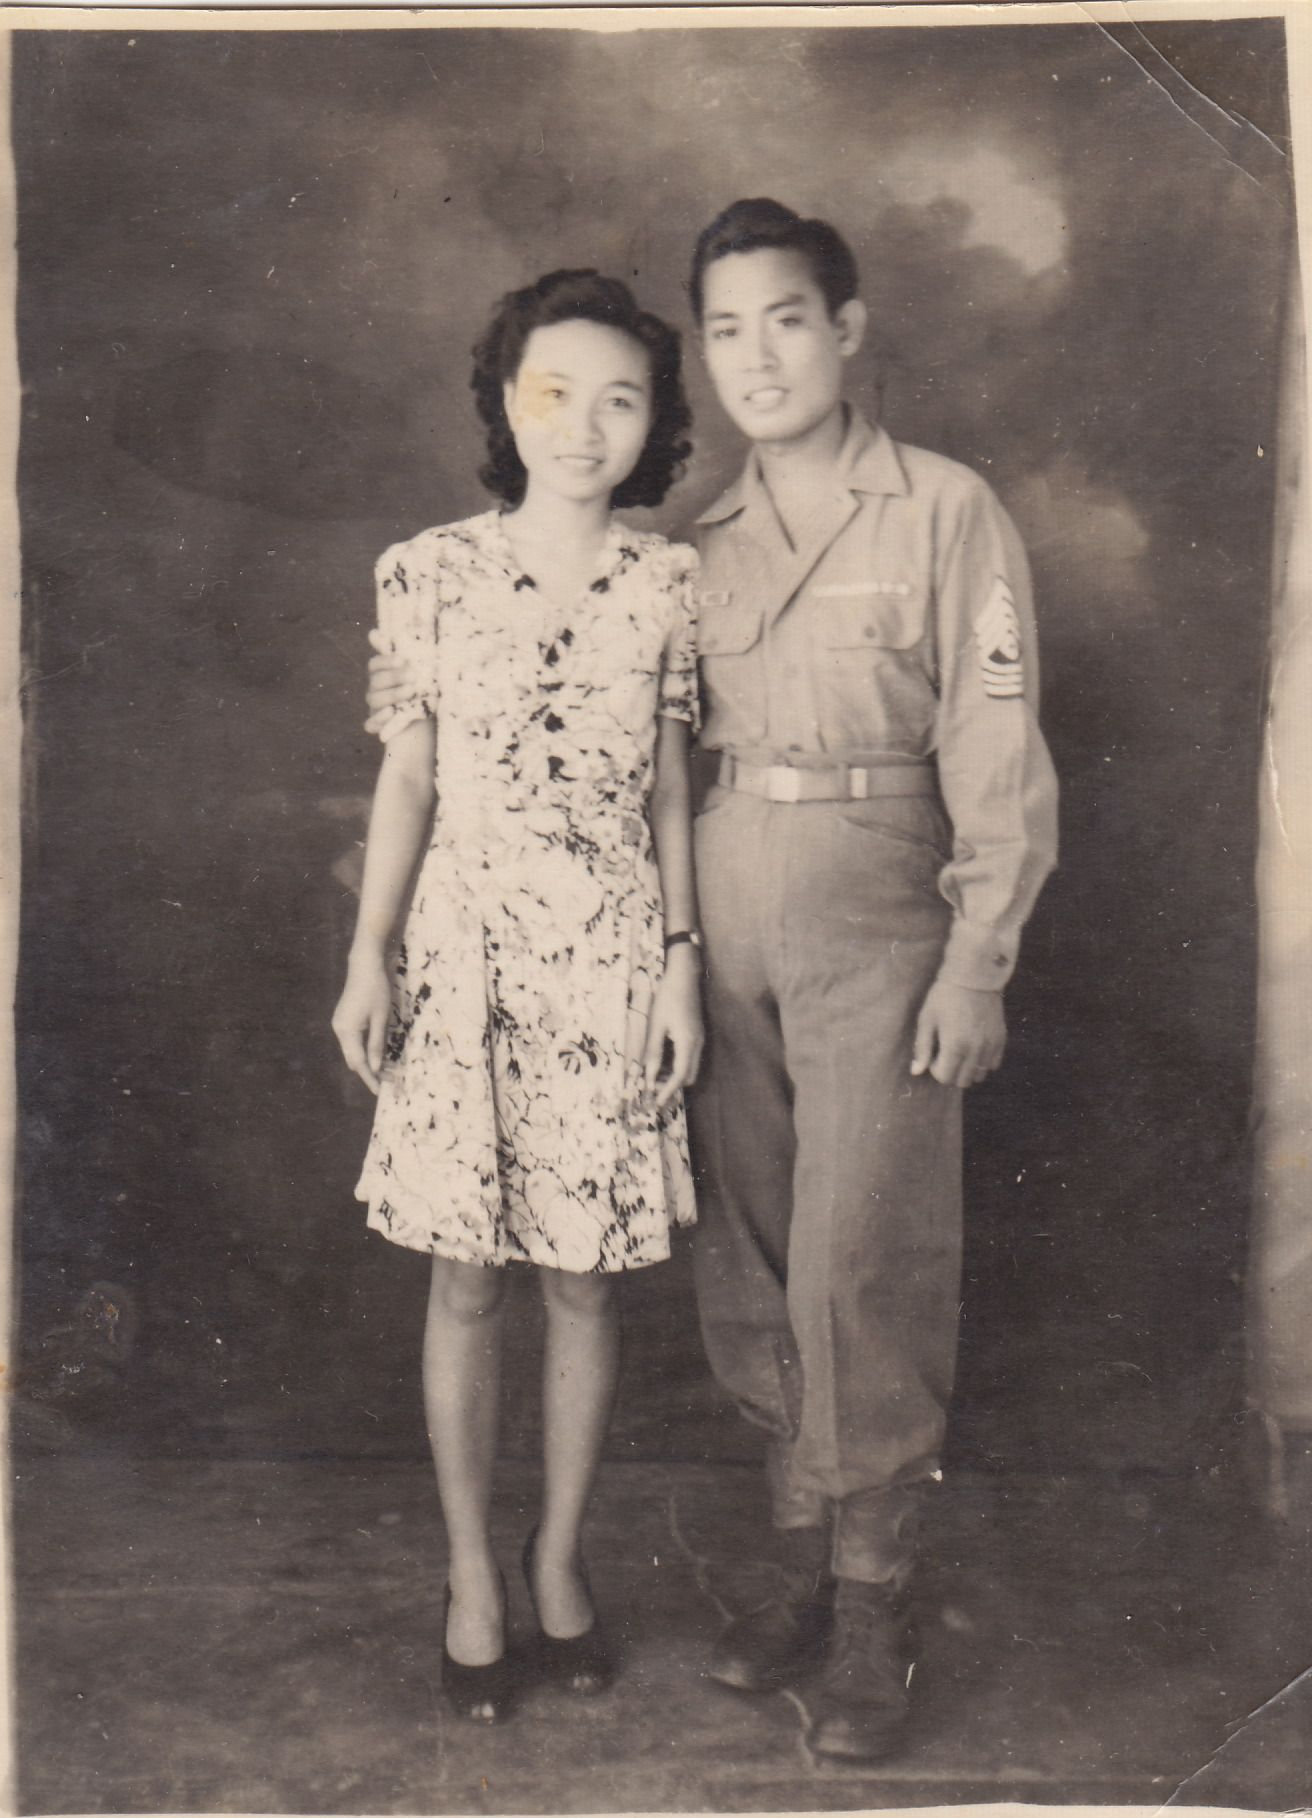 A Pinoy couple, circa 1940's, named Gene and Lucy